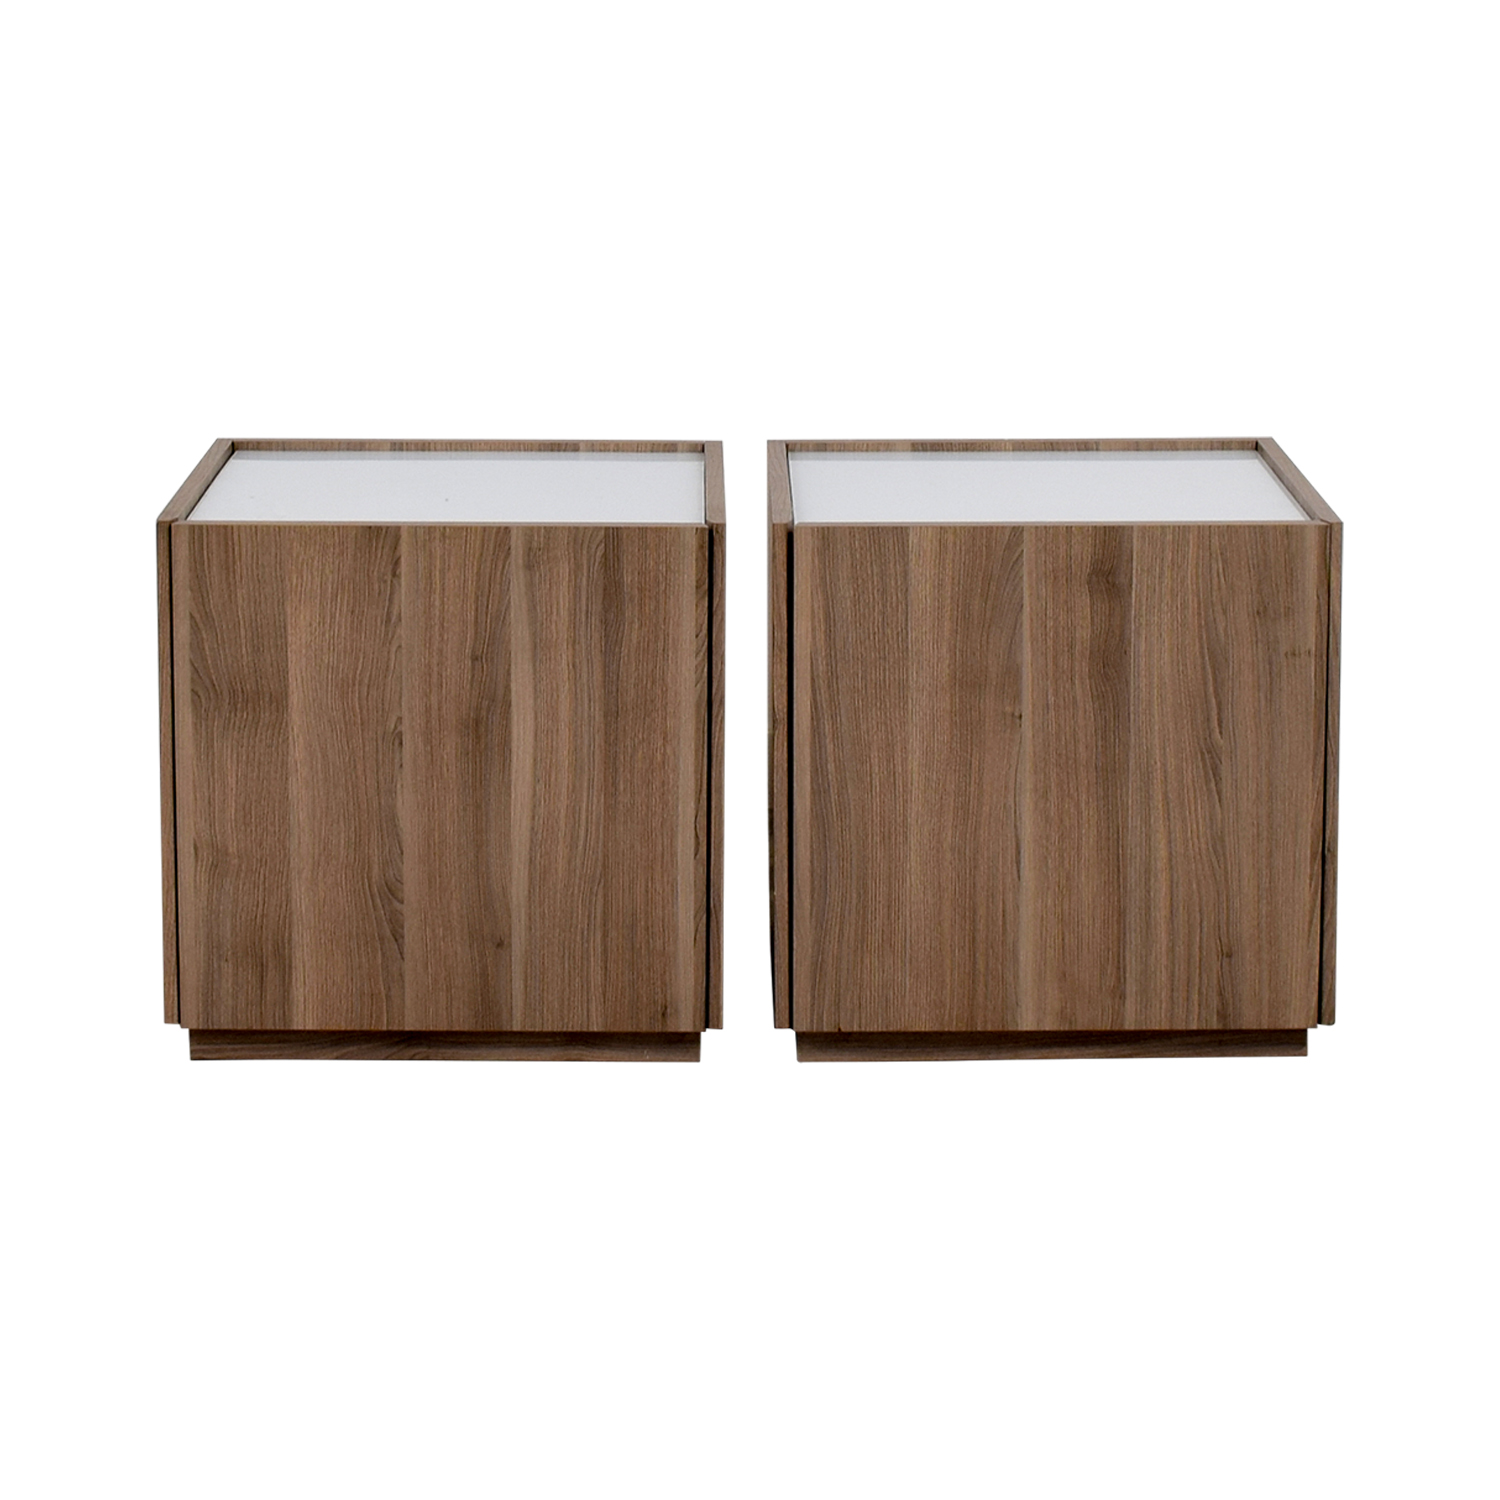 IKEA IKEA Beech Wood Night Stands With Hidden Drawers Dimensions ...